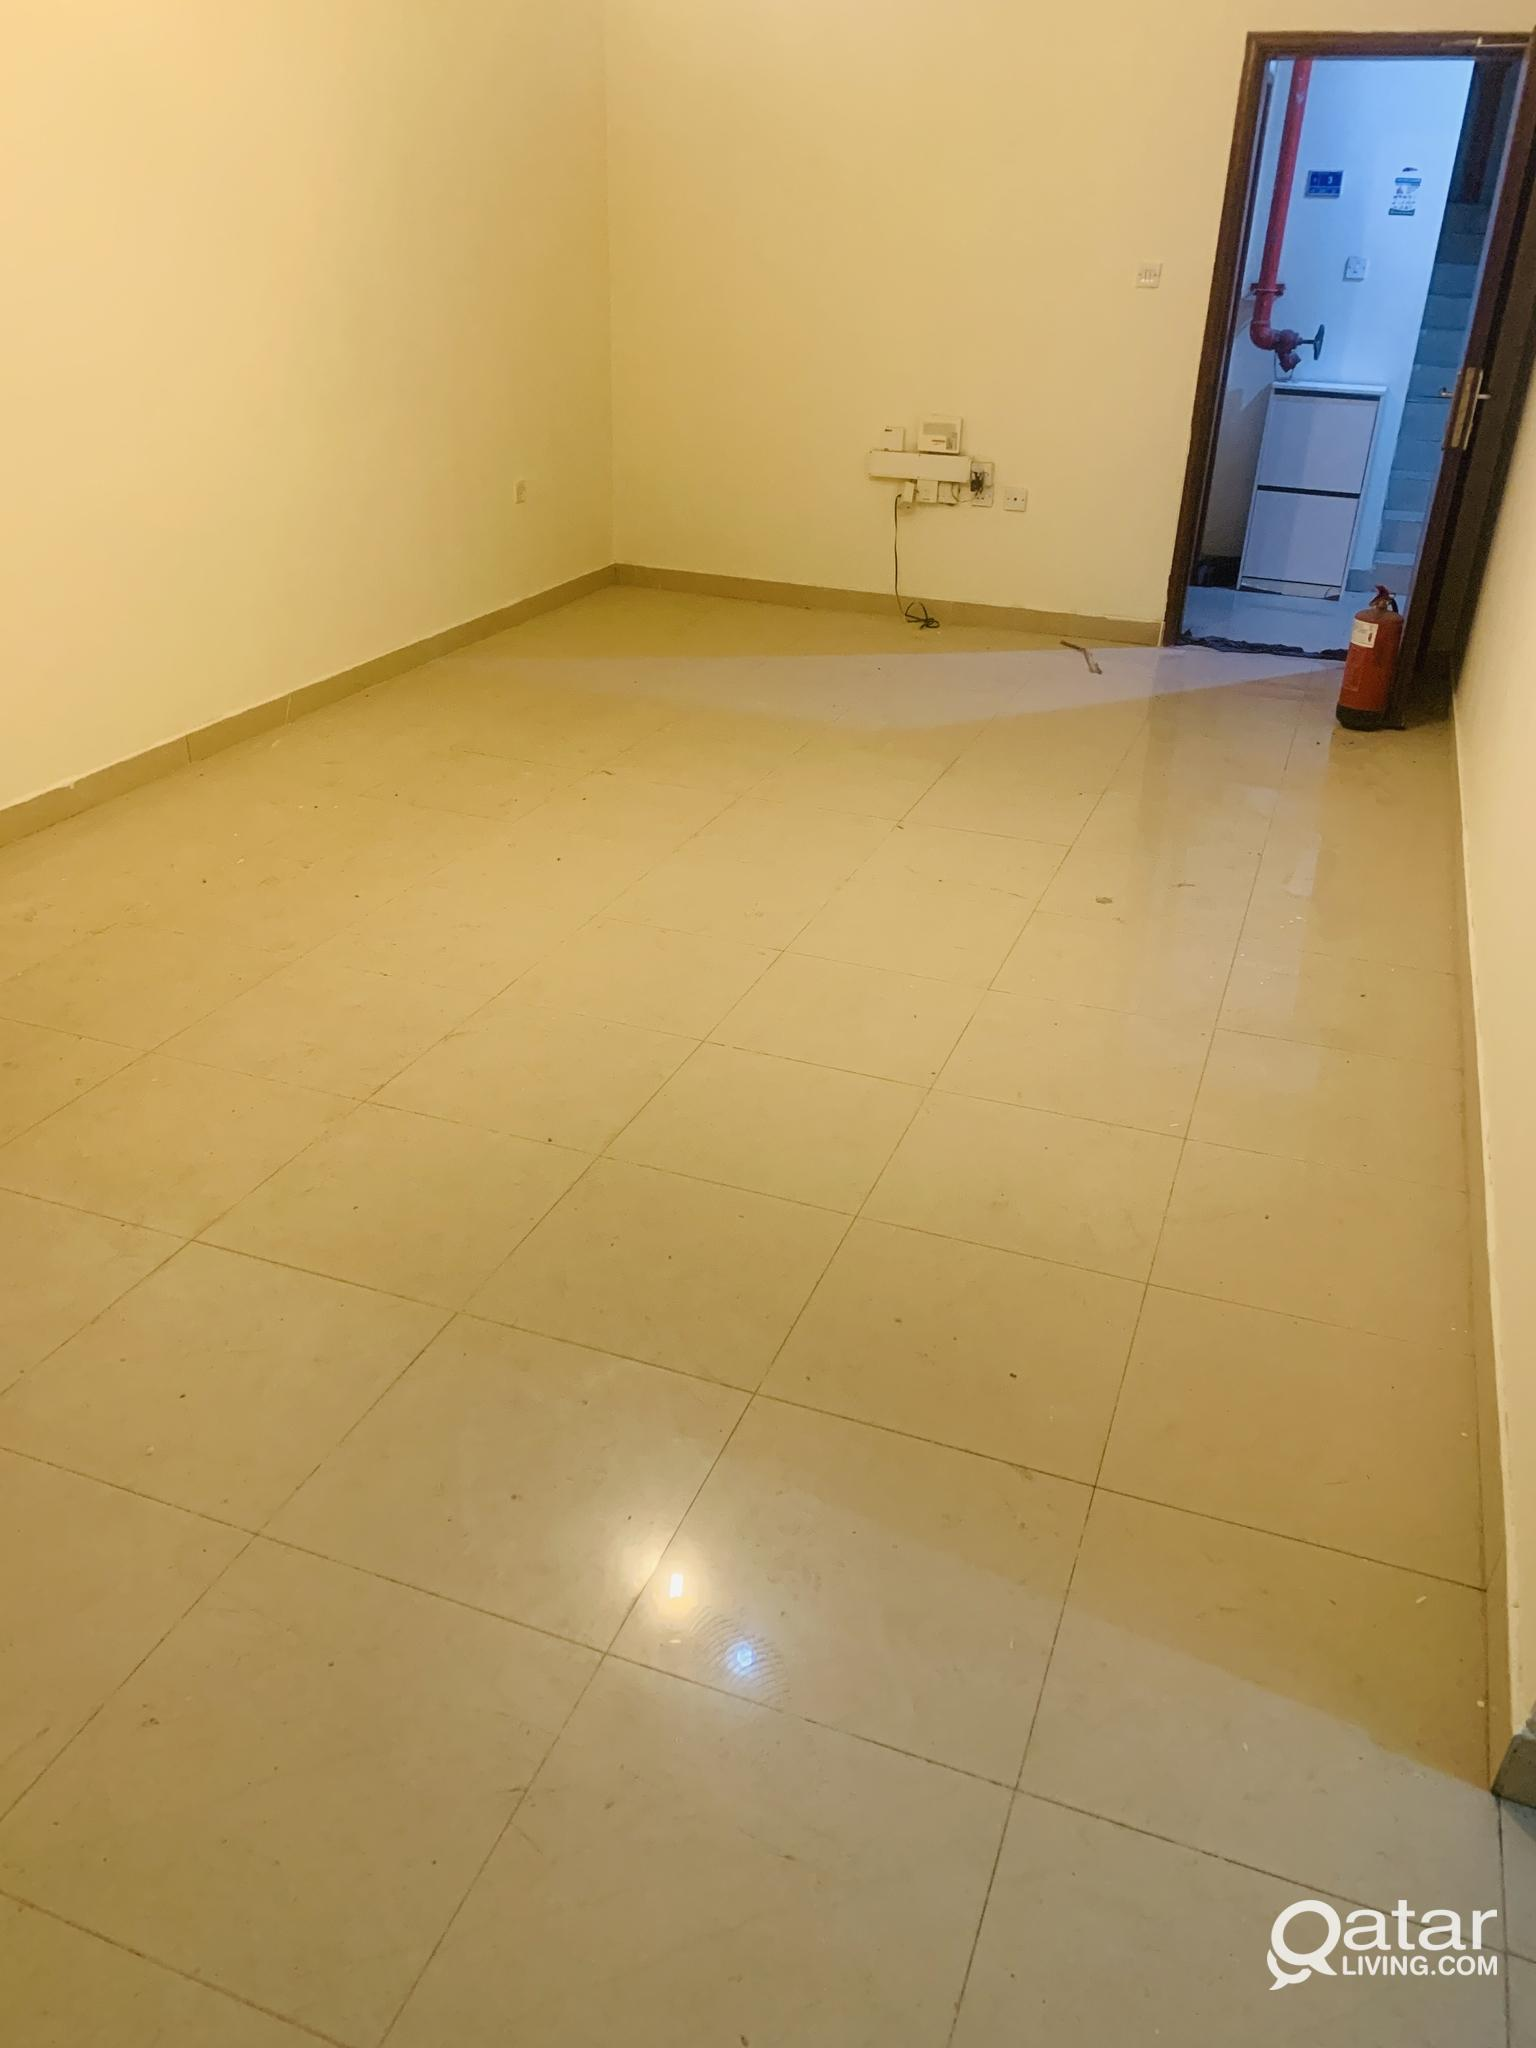 2 BHK GROUND FLOOR FAMILY FLAT AT OLD AIRPORT